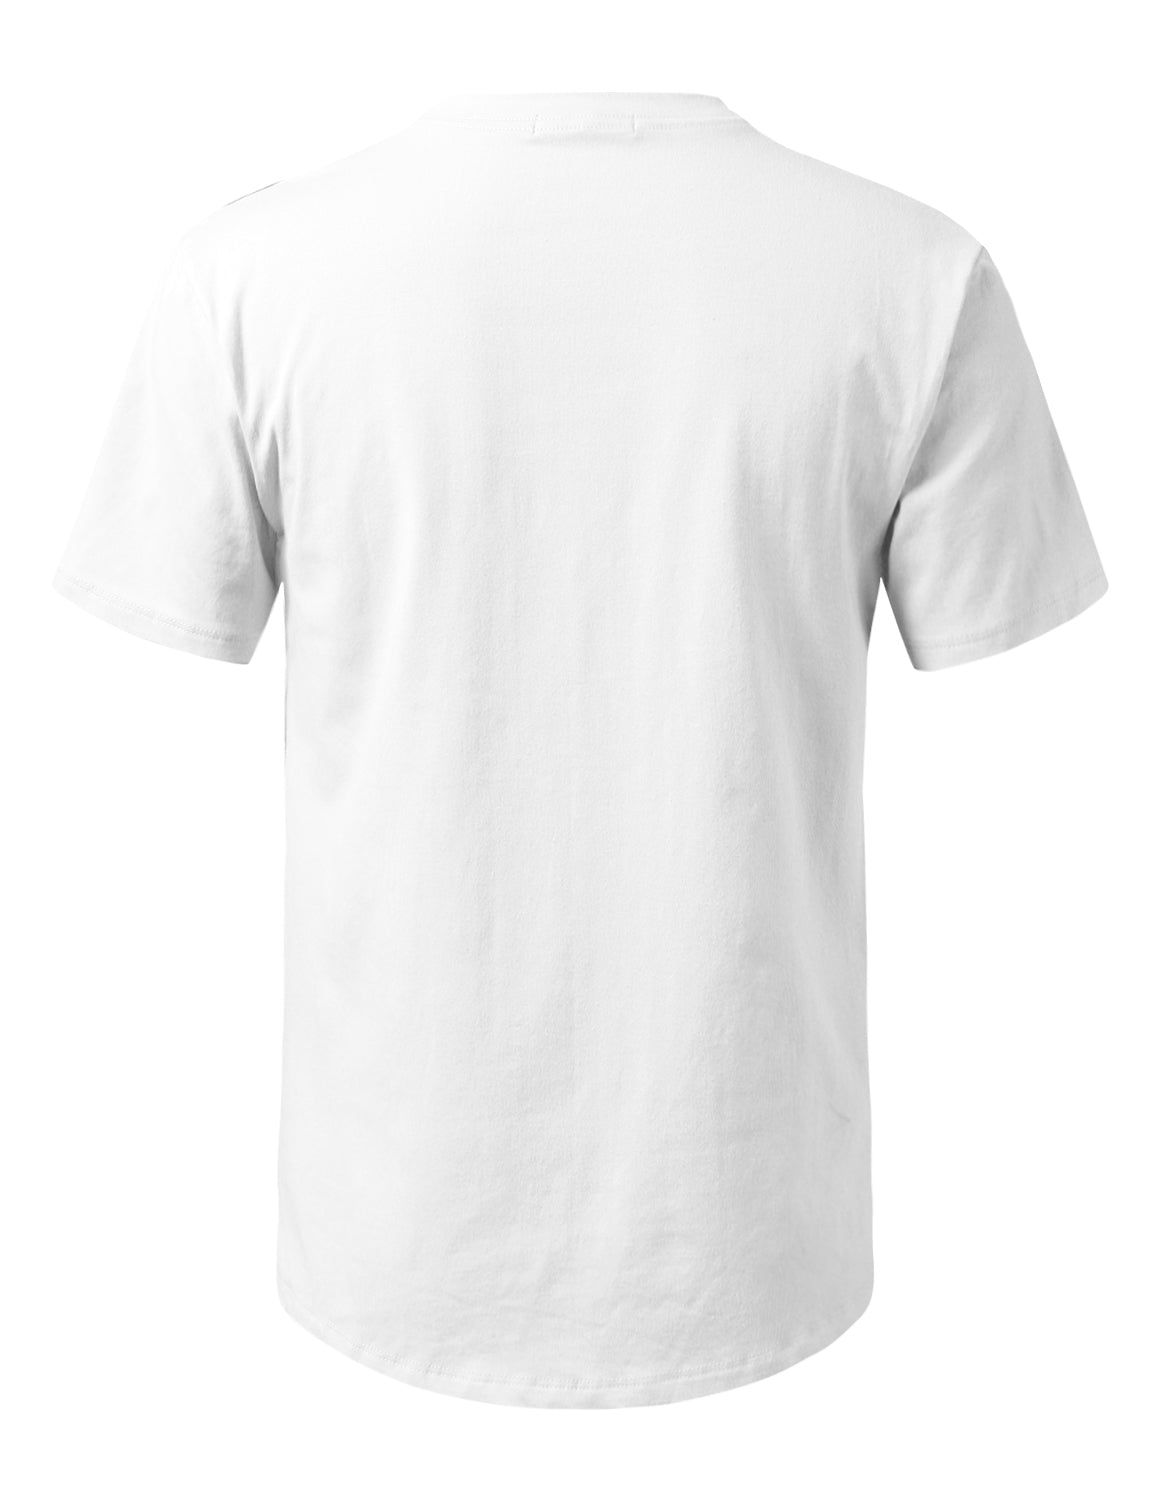 WHITE Solid Color Cotton T-shirt - URBANCREWS